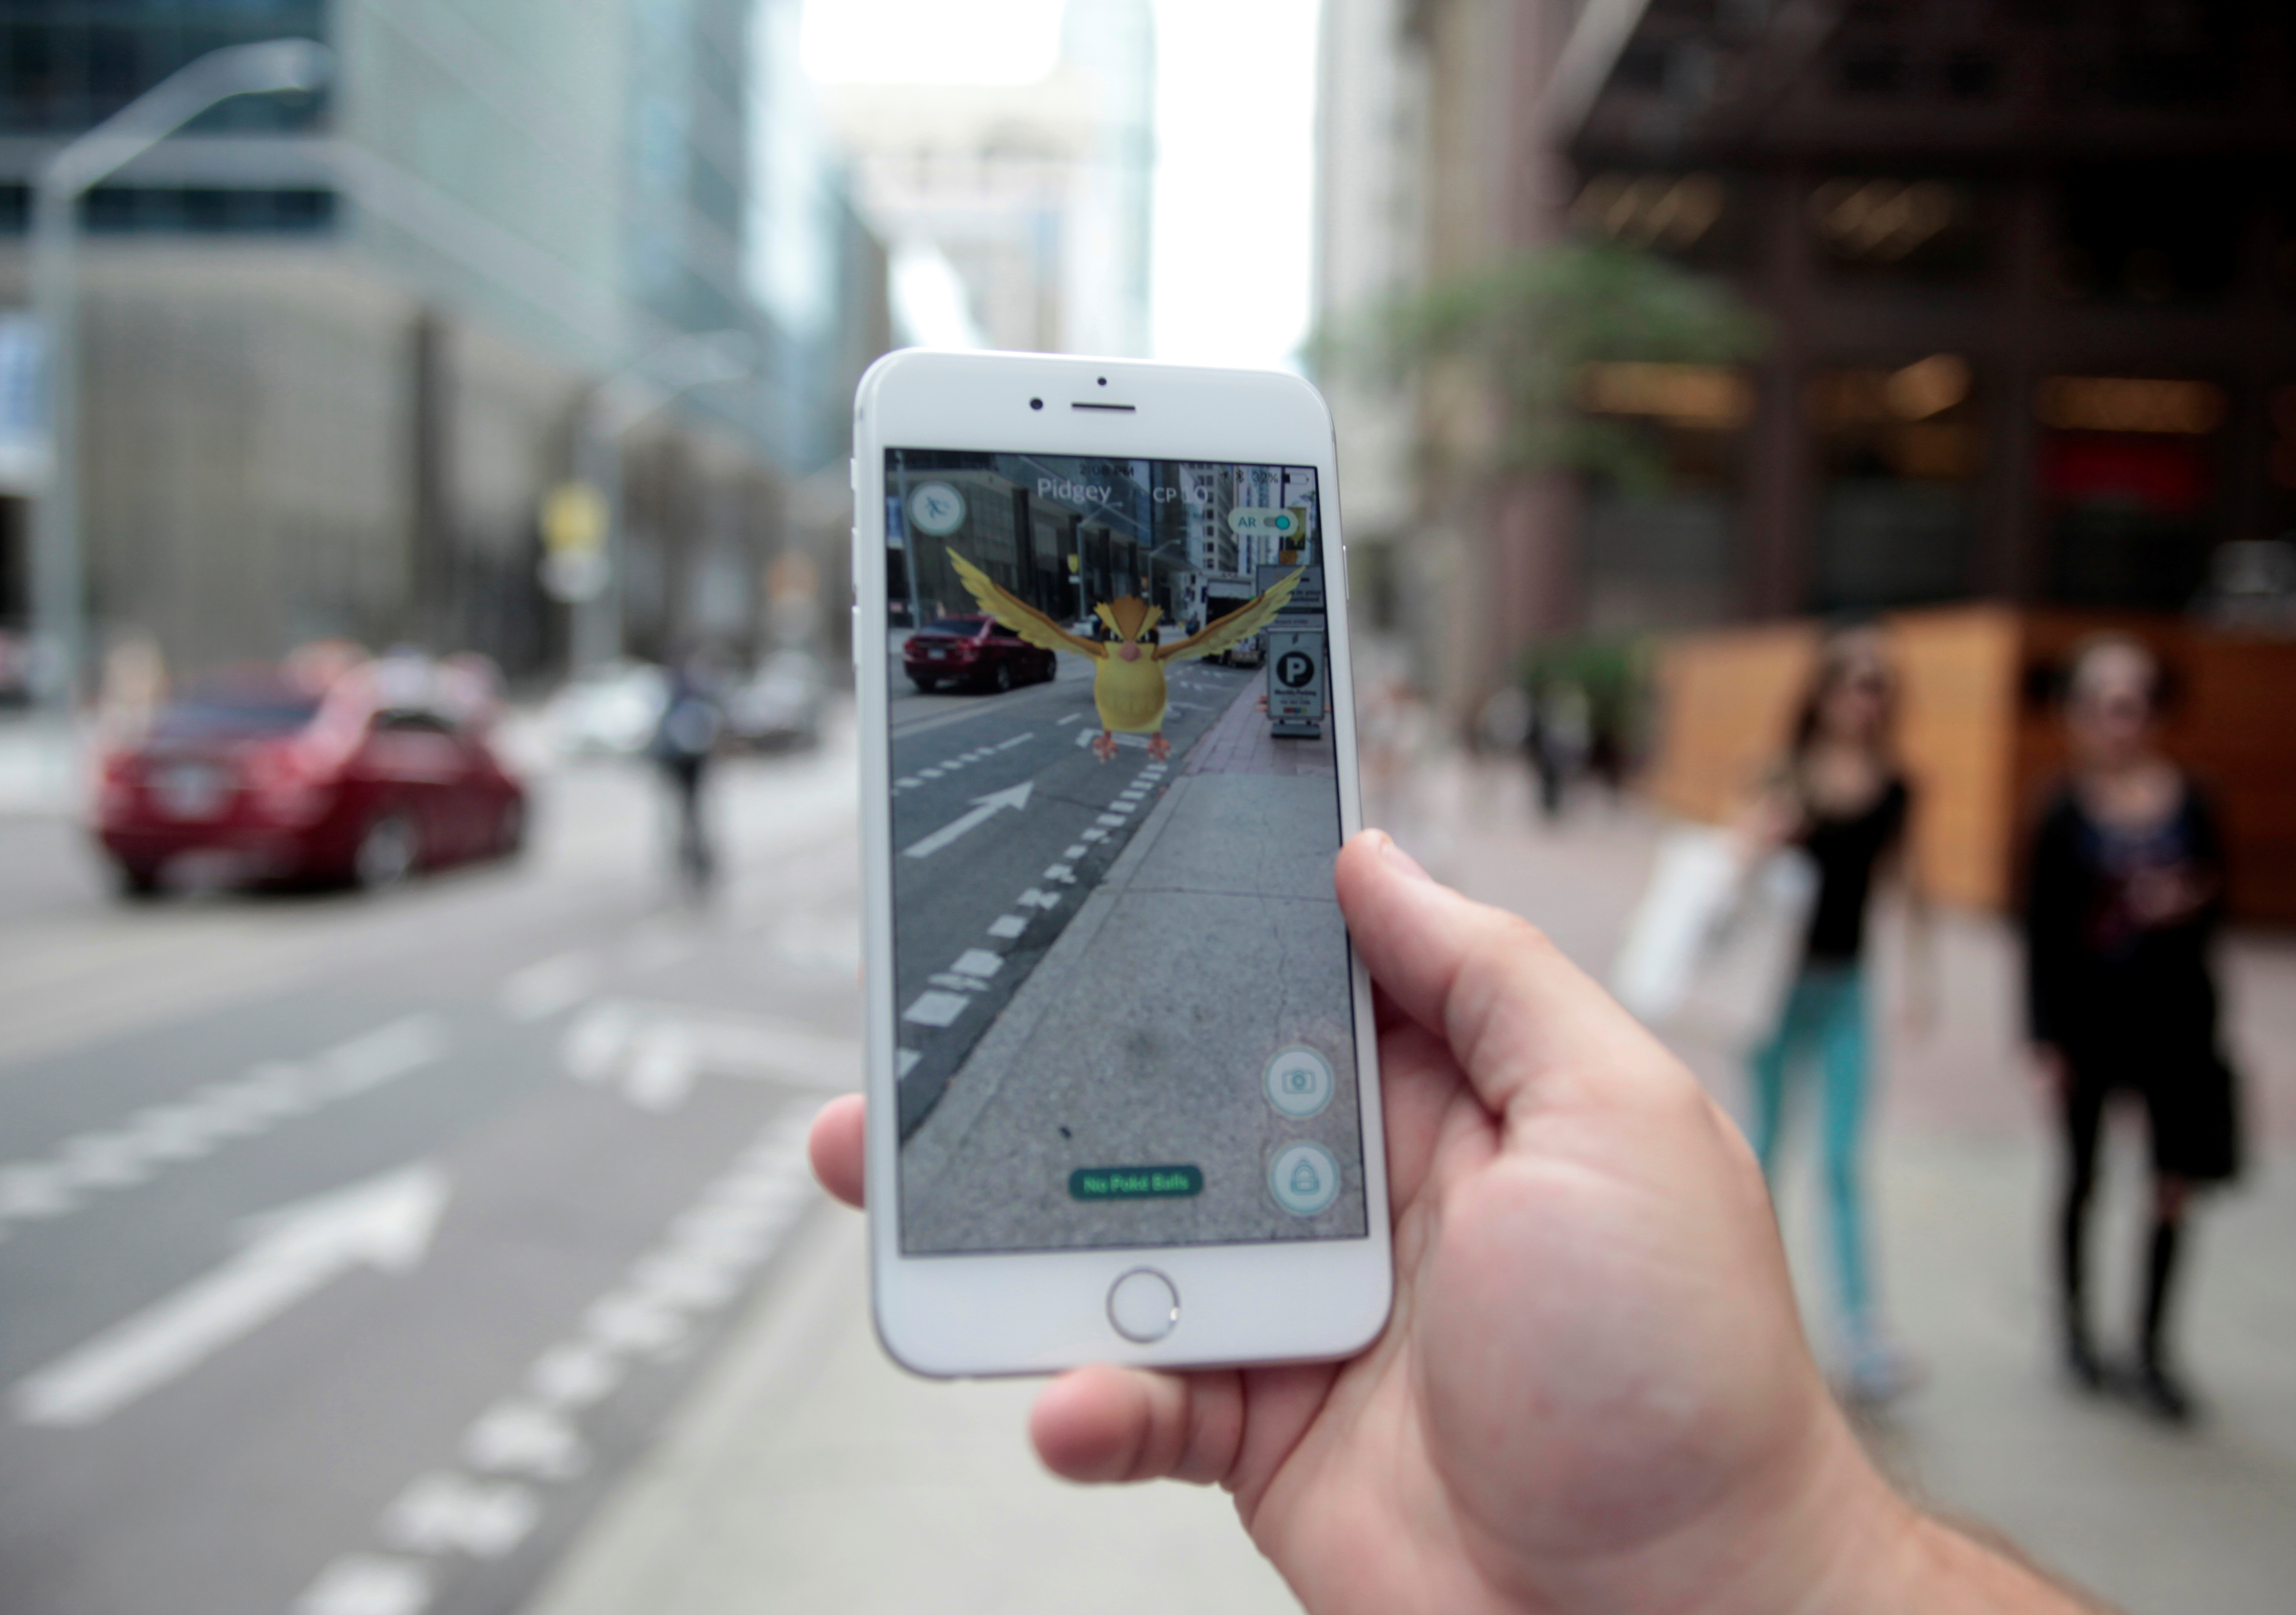 If Hunting For Pok  mon Is Your Physical Activity  You Better Be     Pinterest Pok  mon Go is the latest mobile game that encourages players to use their  smartphones  GPS